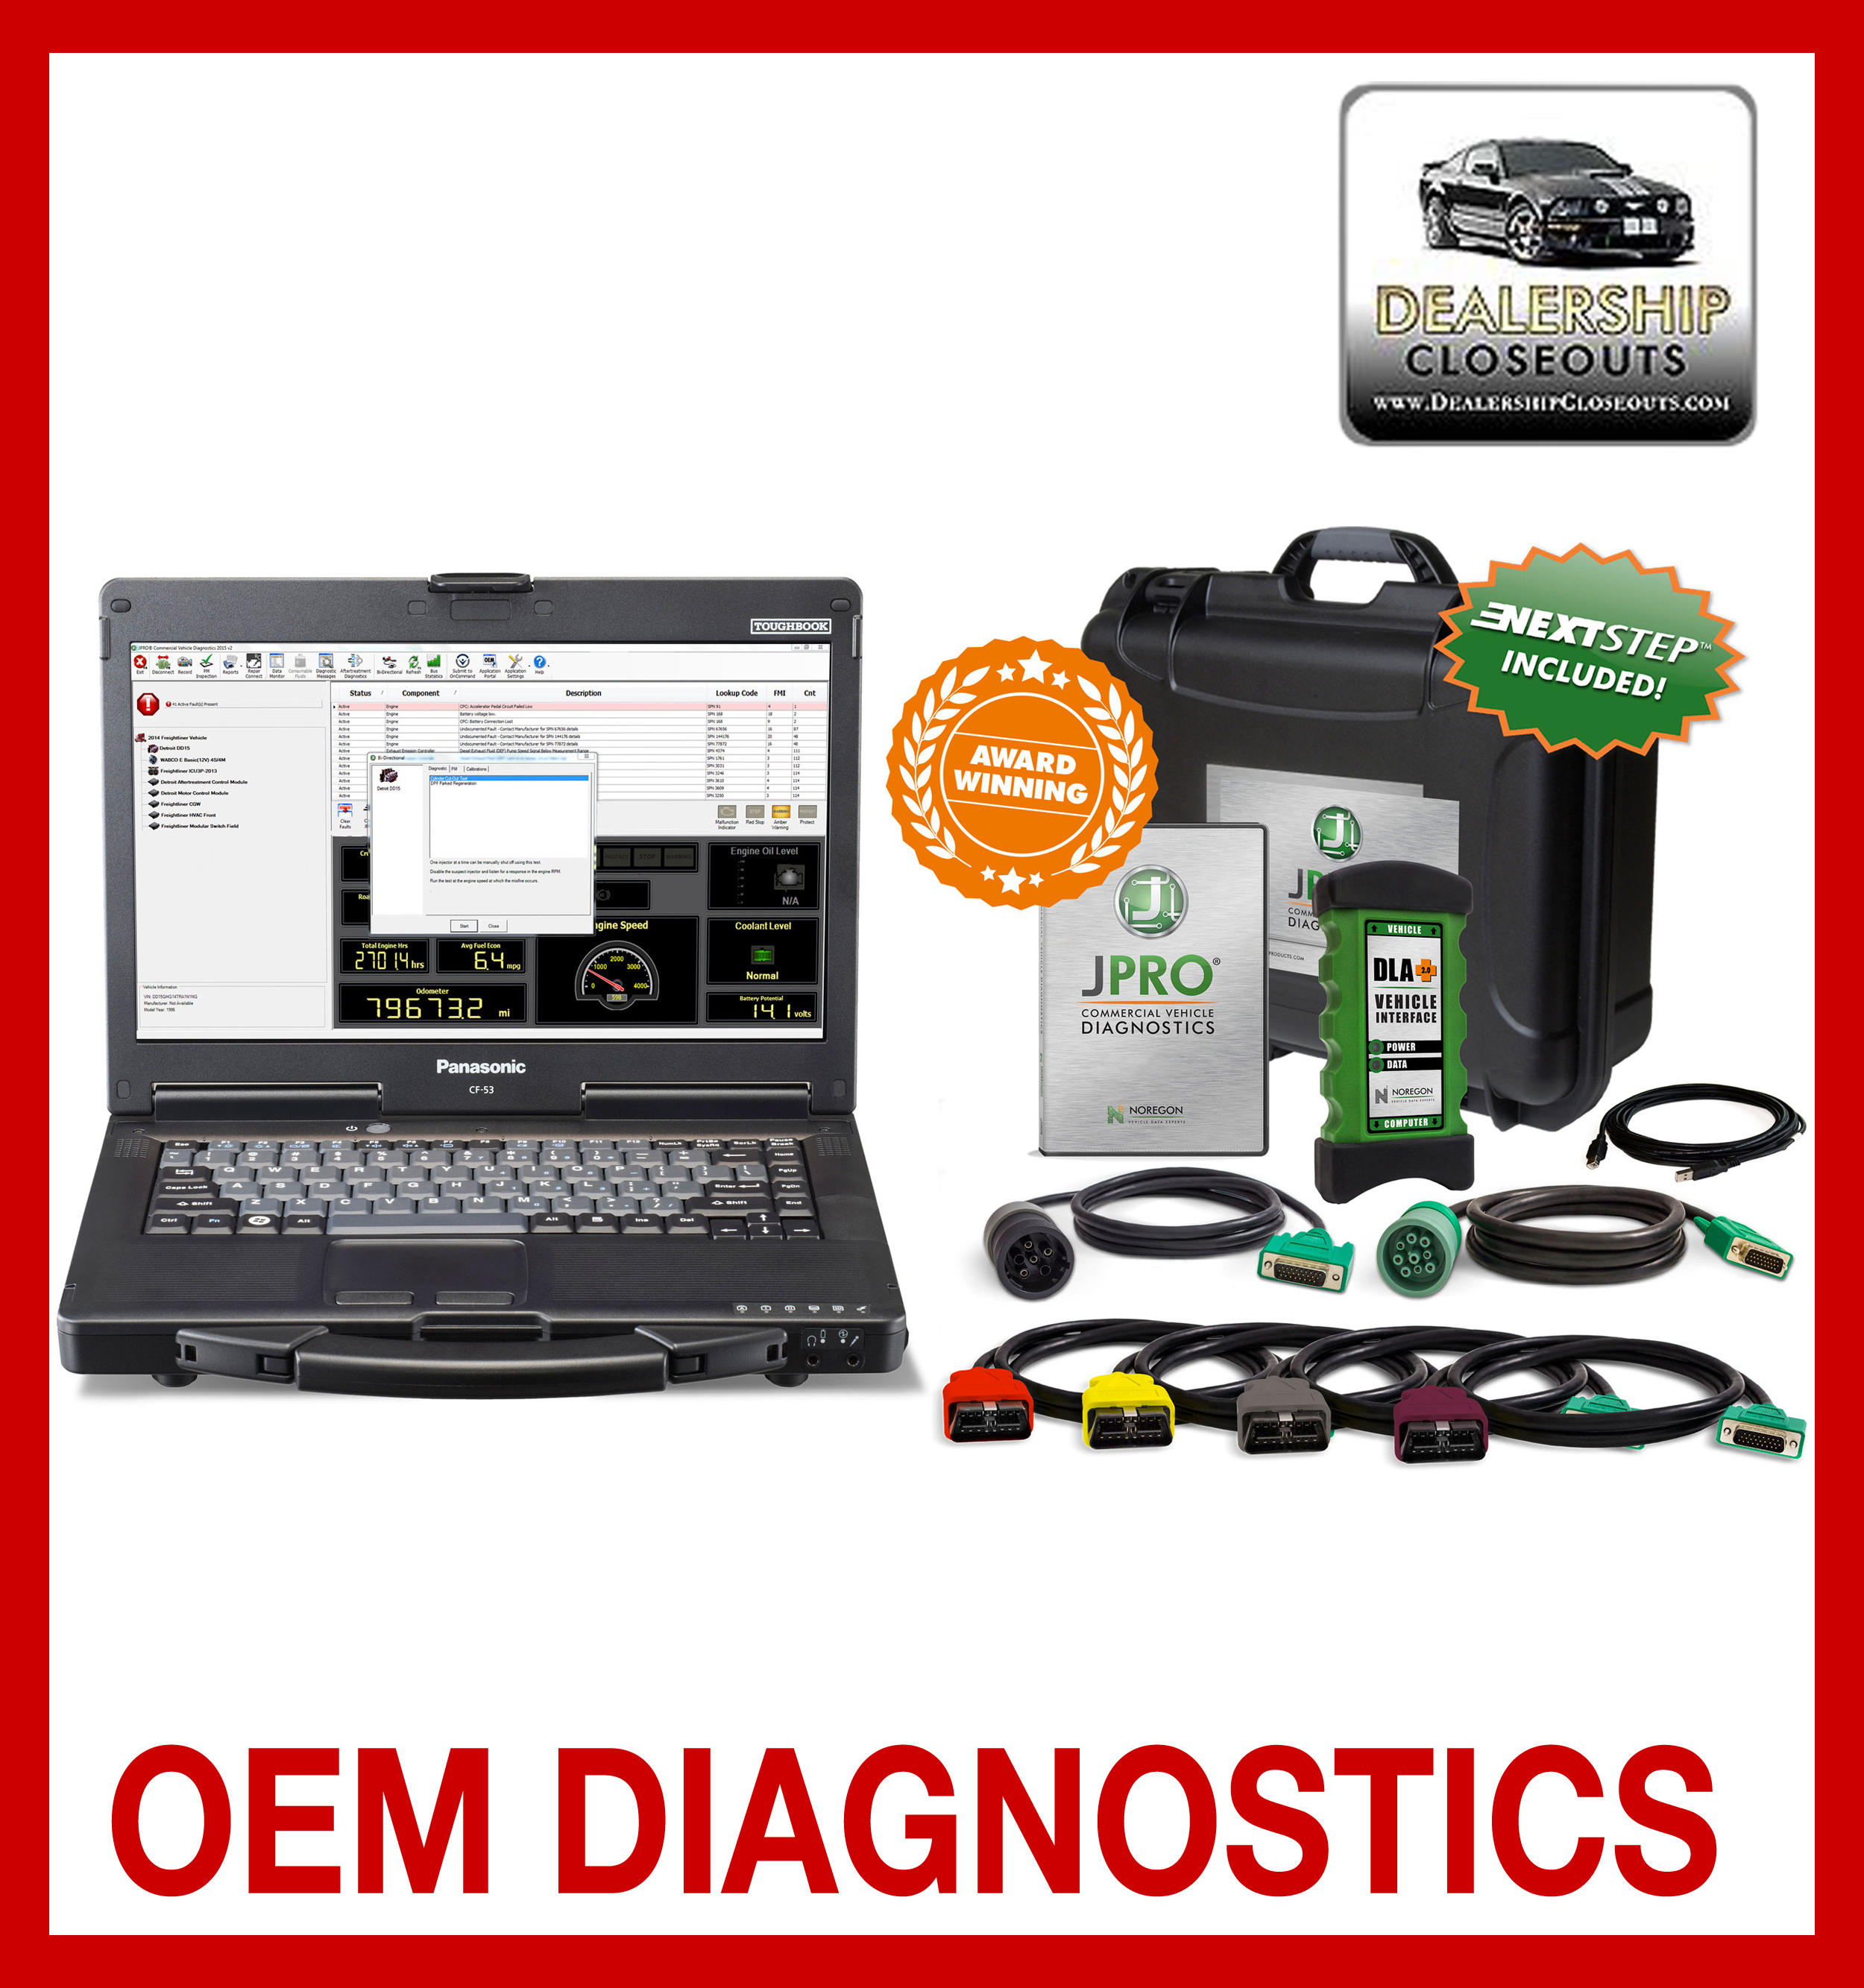 JPro Professional Diagnostic Toolbox with Next Step 00151